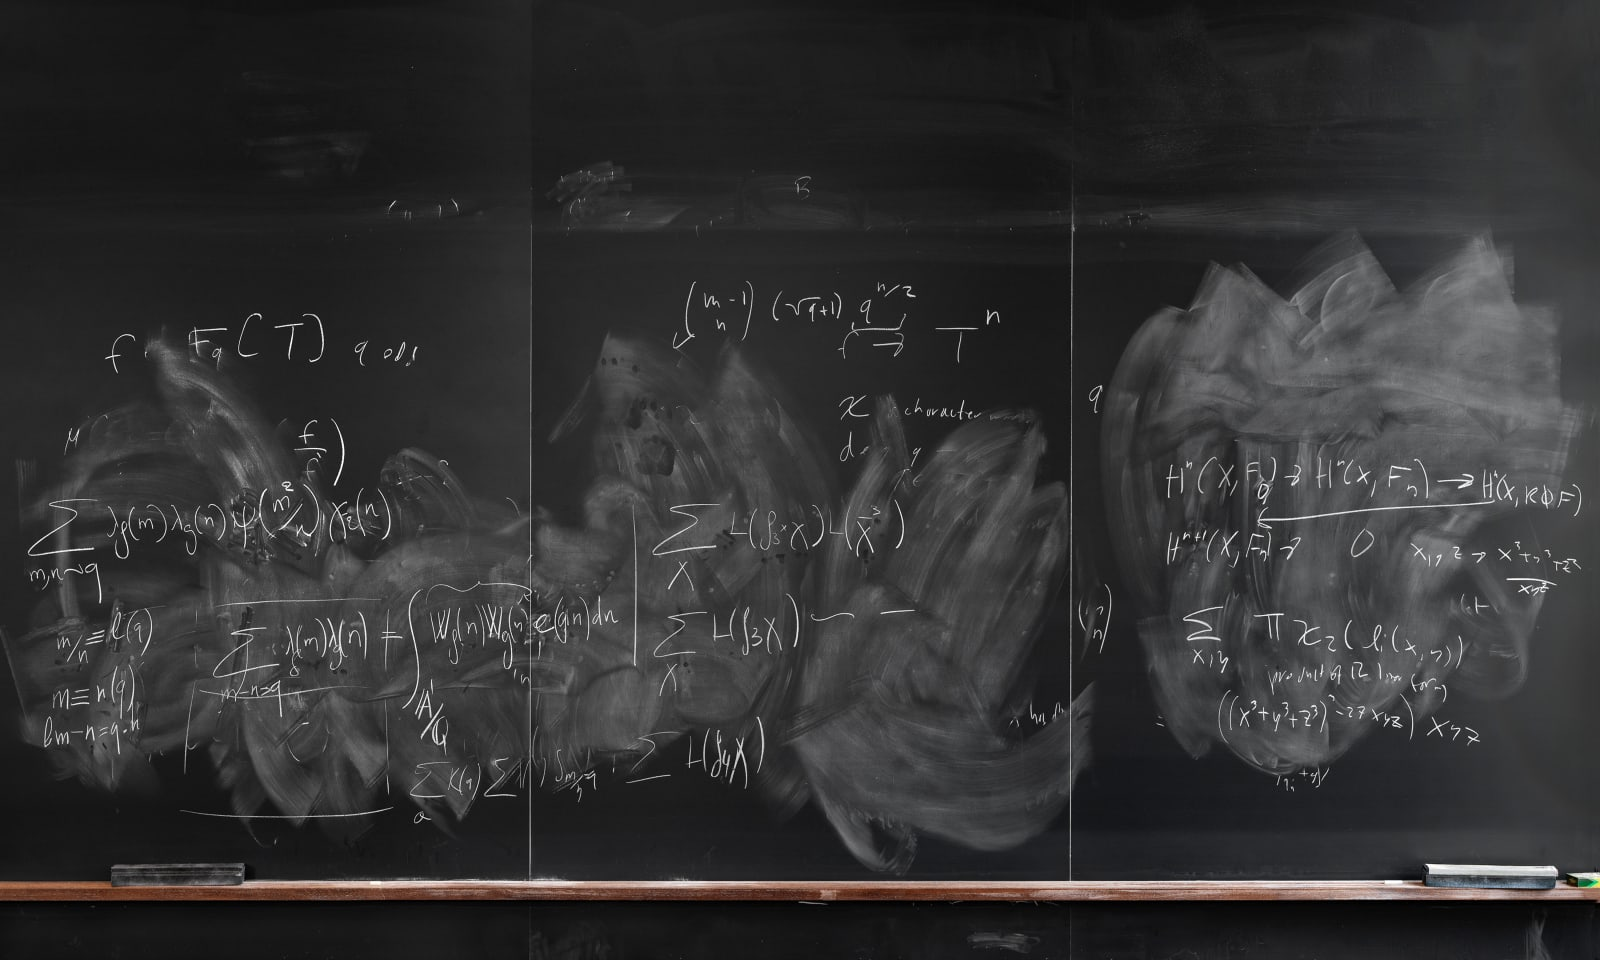 Formulas on chalkboard by mathematician Philippe Michele, from the Do Not Erase series by Jessica Wynne